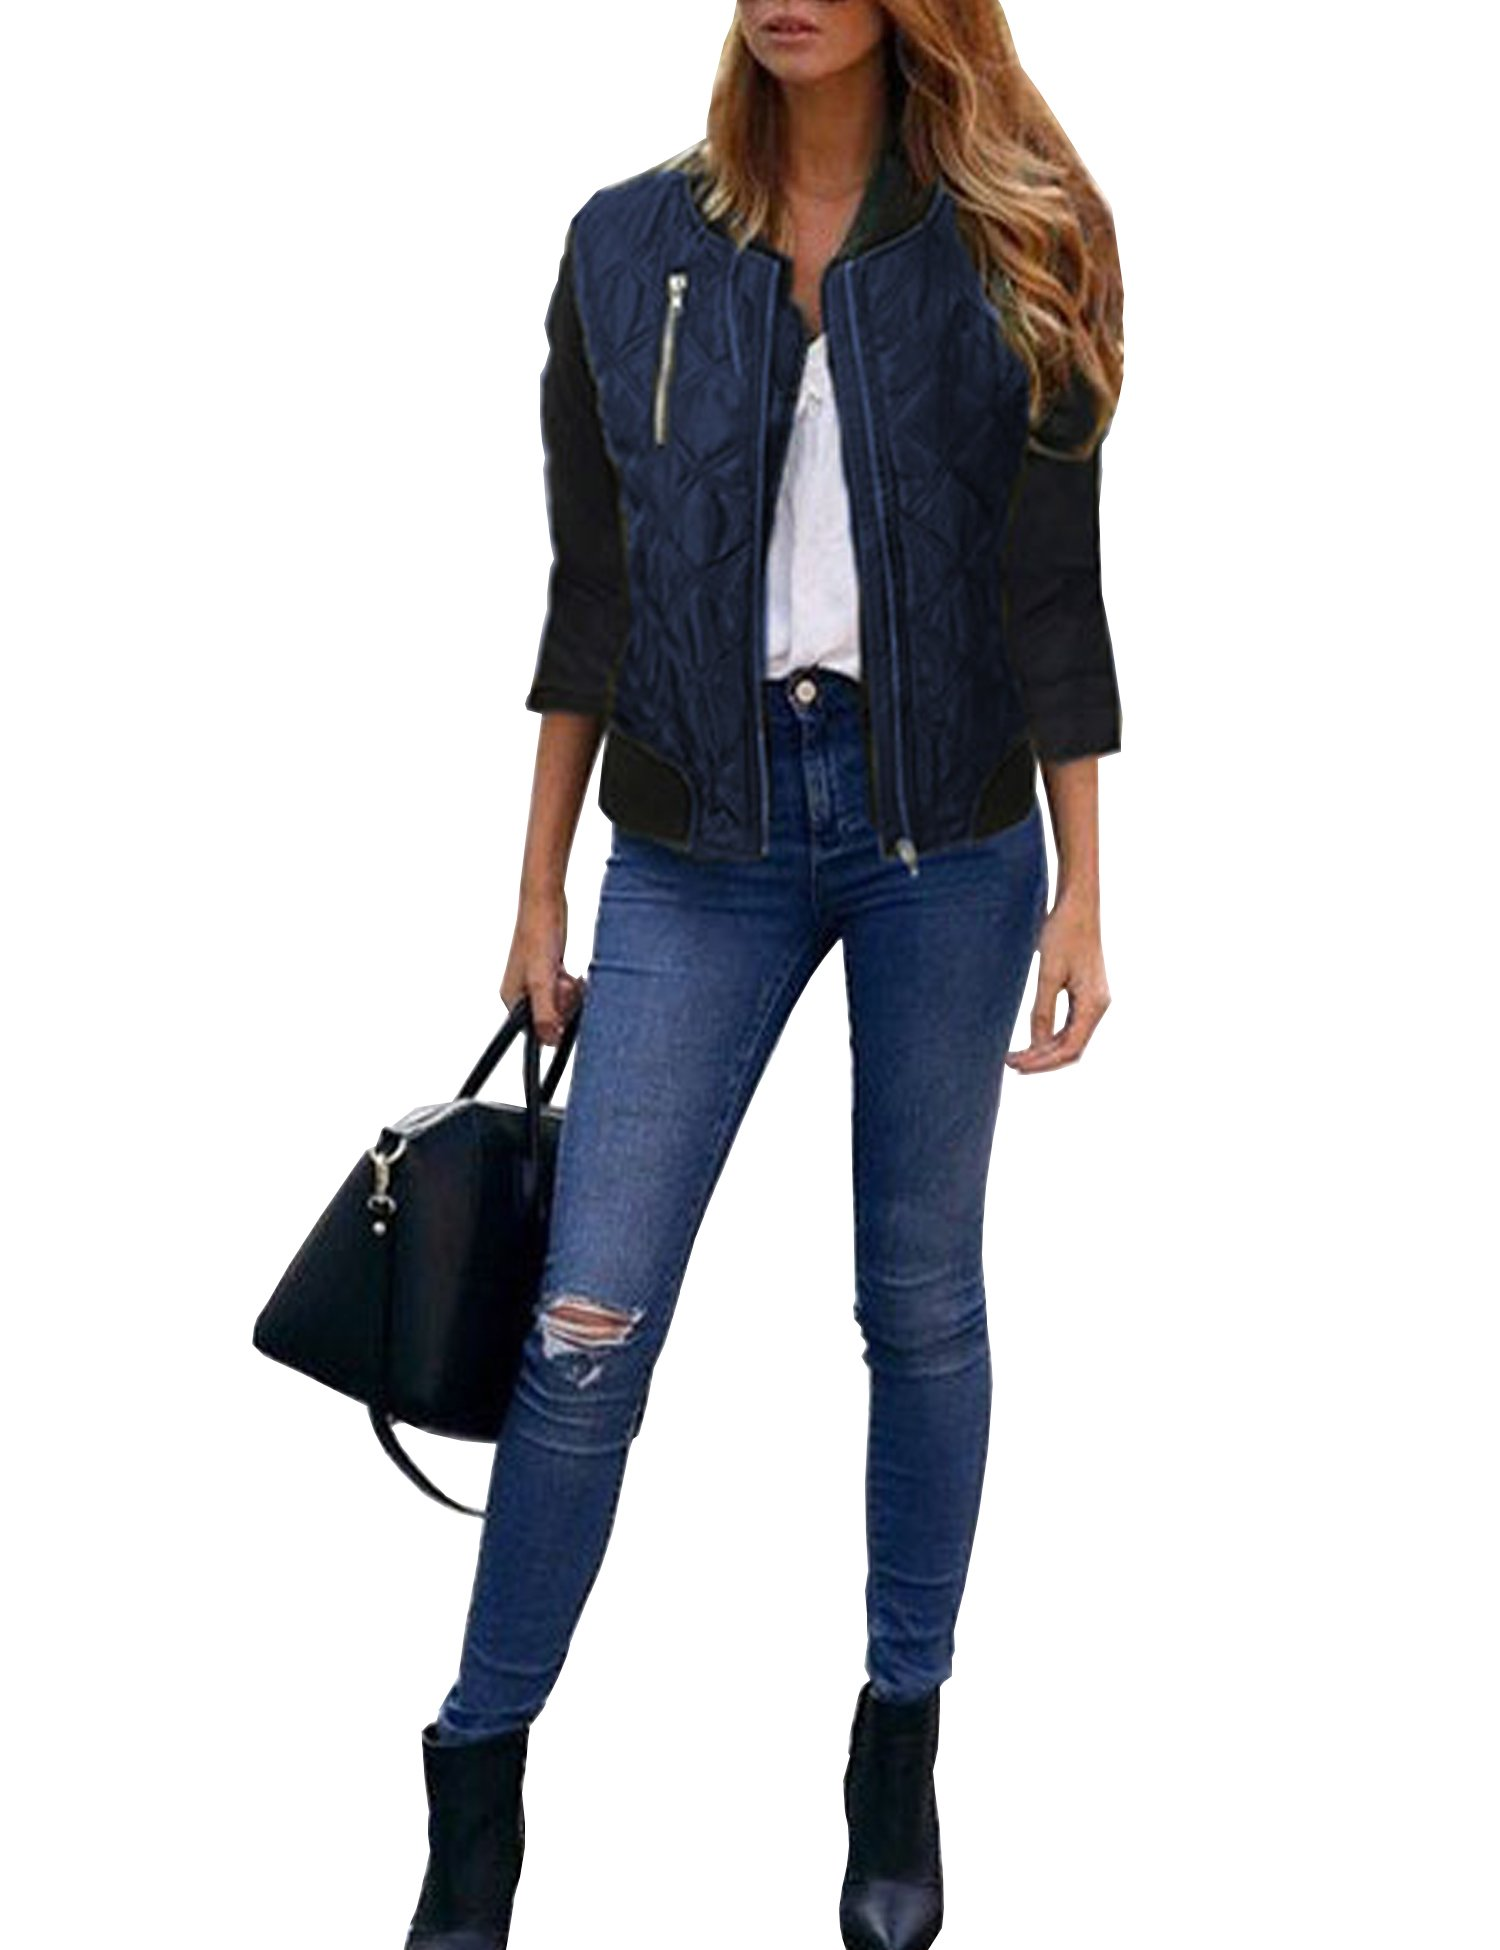 Roaays M Womens Stylish Zip up Quilted Jackets Coat S-XXL